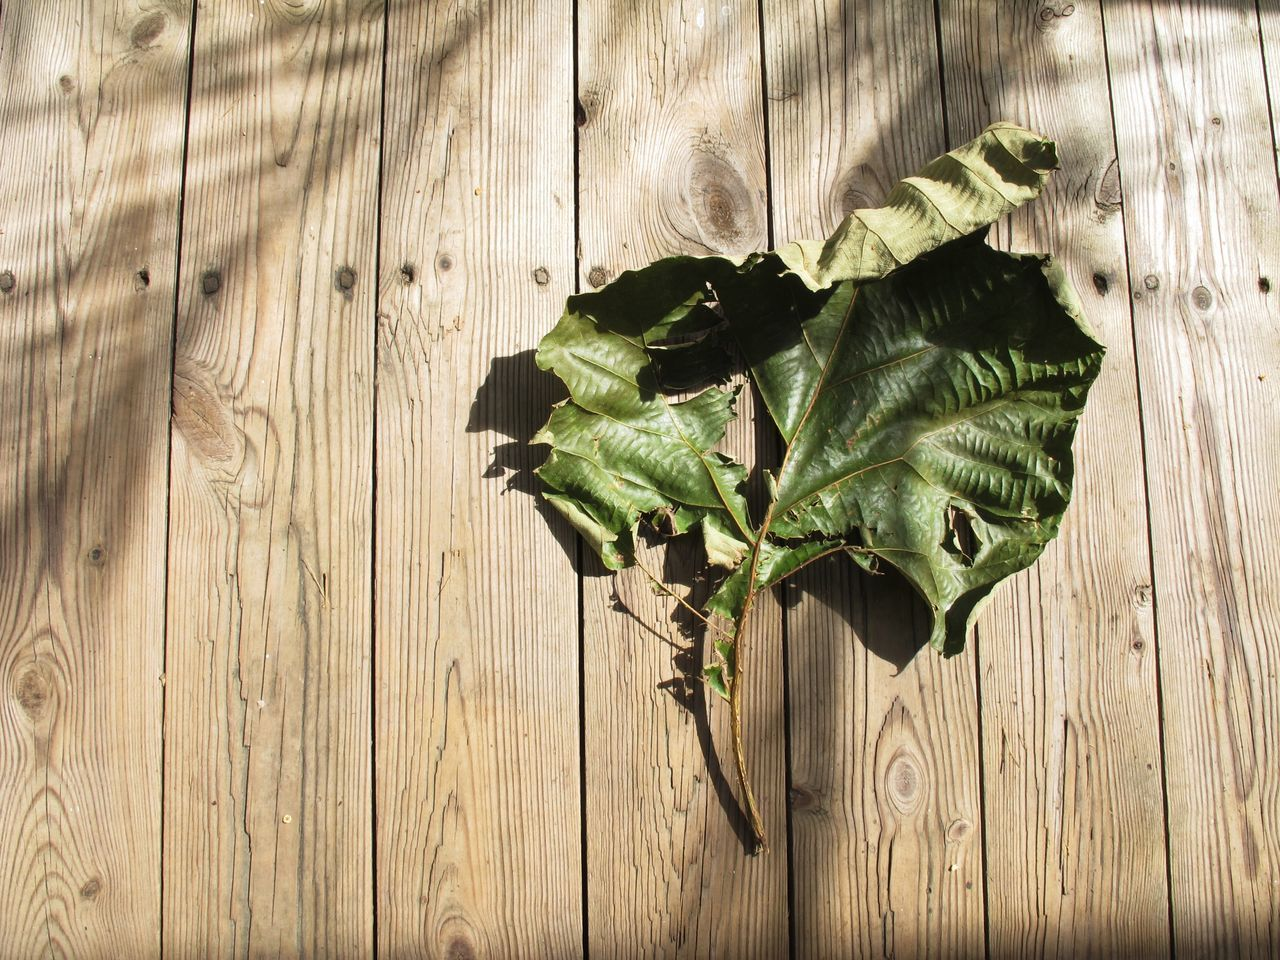 wood - material, leaf, plant, table, green color, no people, directly above, nature, textured, food and drink, close-up, wood grain, indoors, wood paneling, freshness, healthy eating, food, day